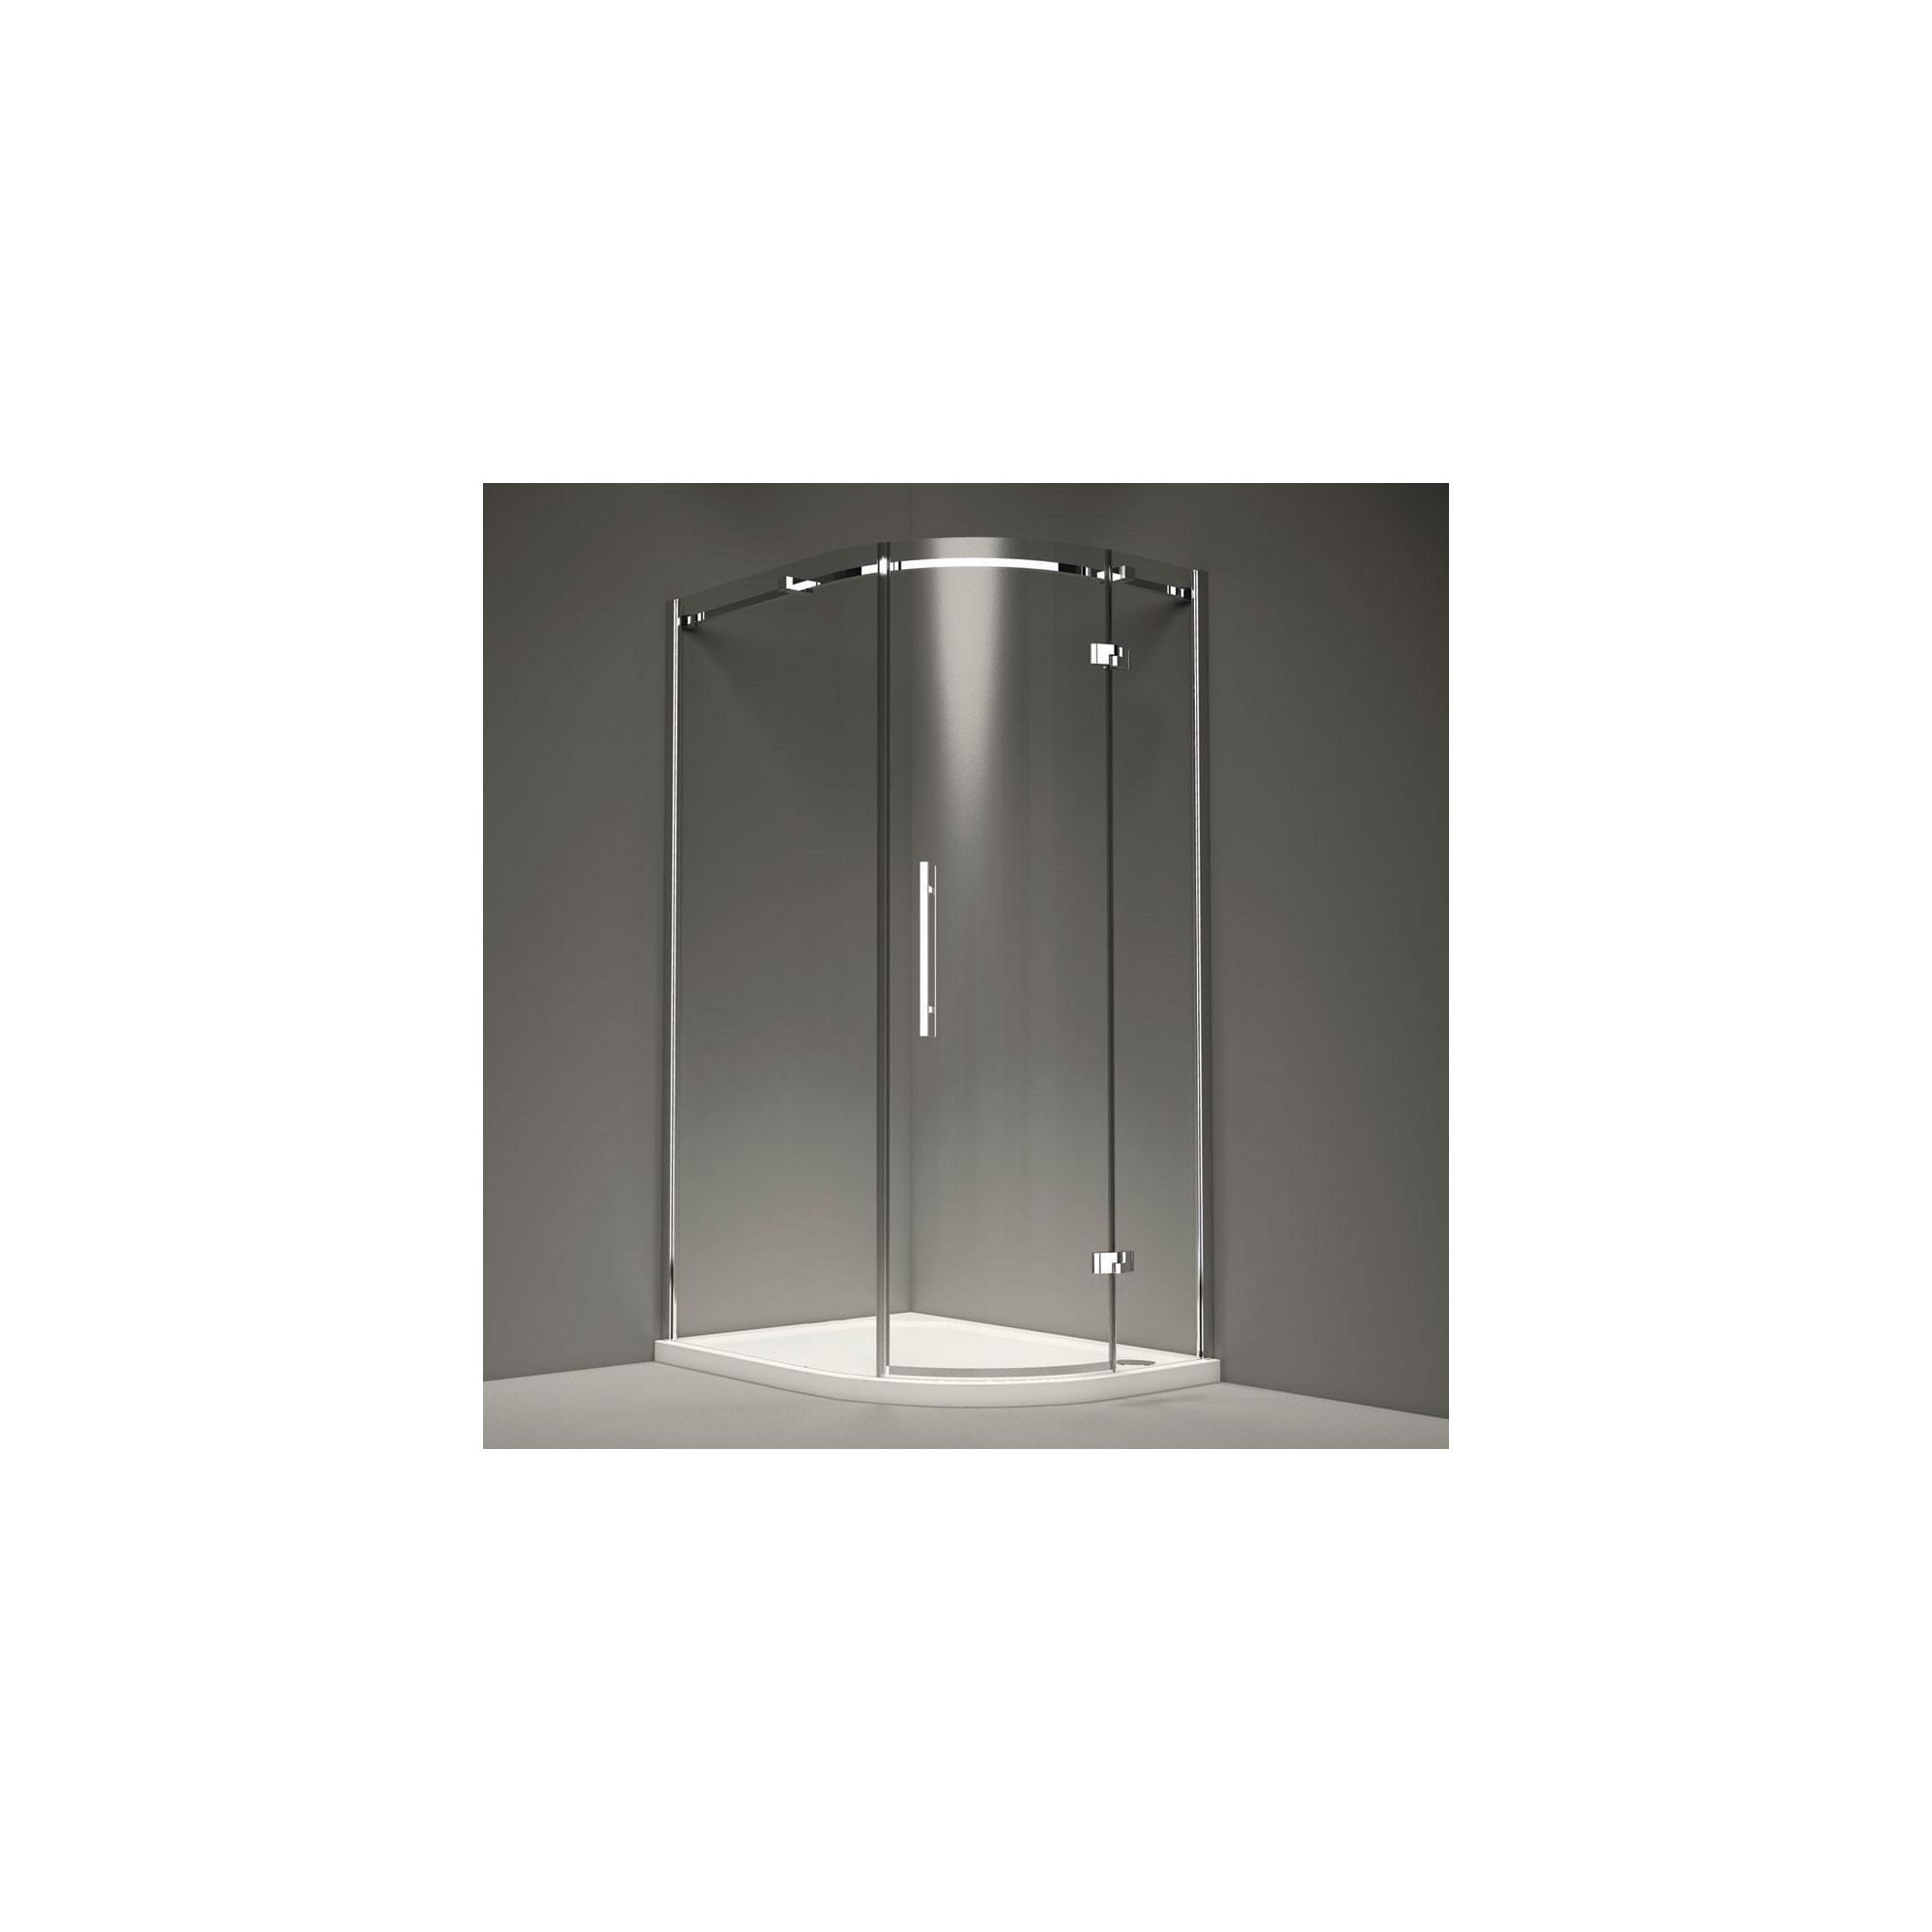 Merlyn Series 9 Offset Quadrant Shower Door, 1200mm x 900mm, 8mm Glass, Right Handed at Tesco Direct